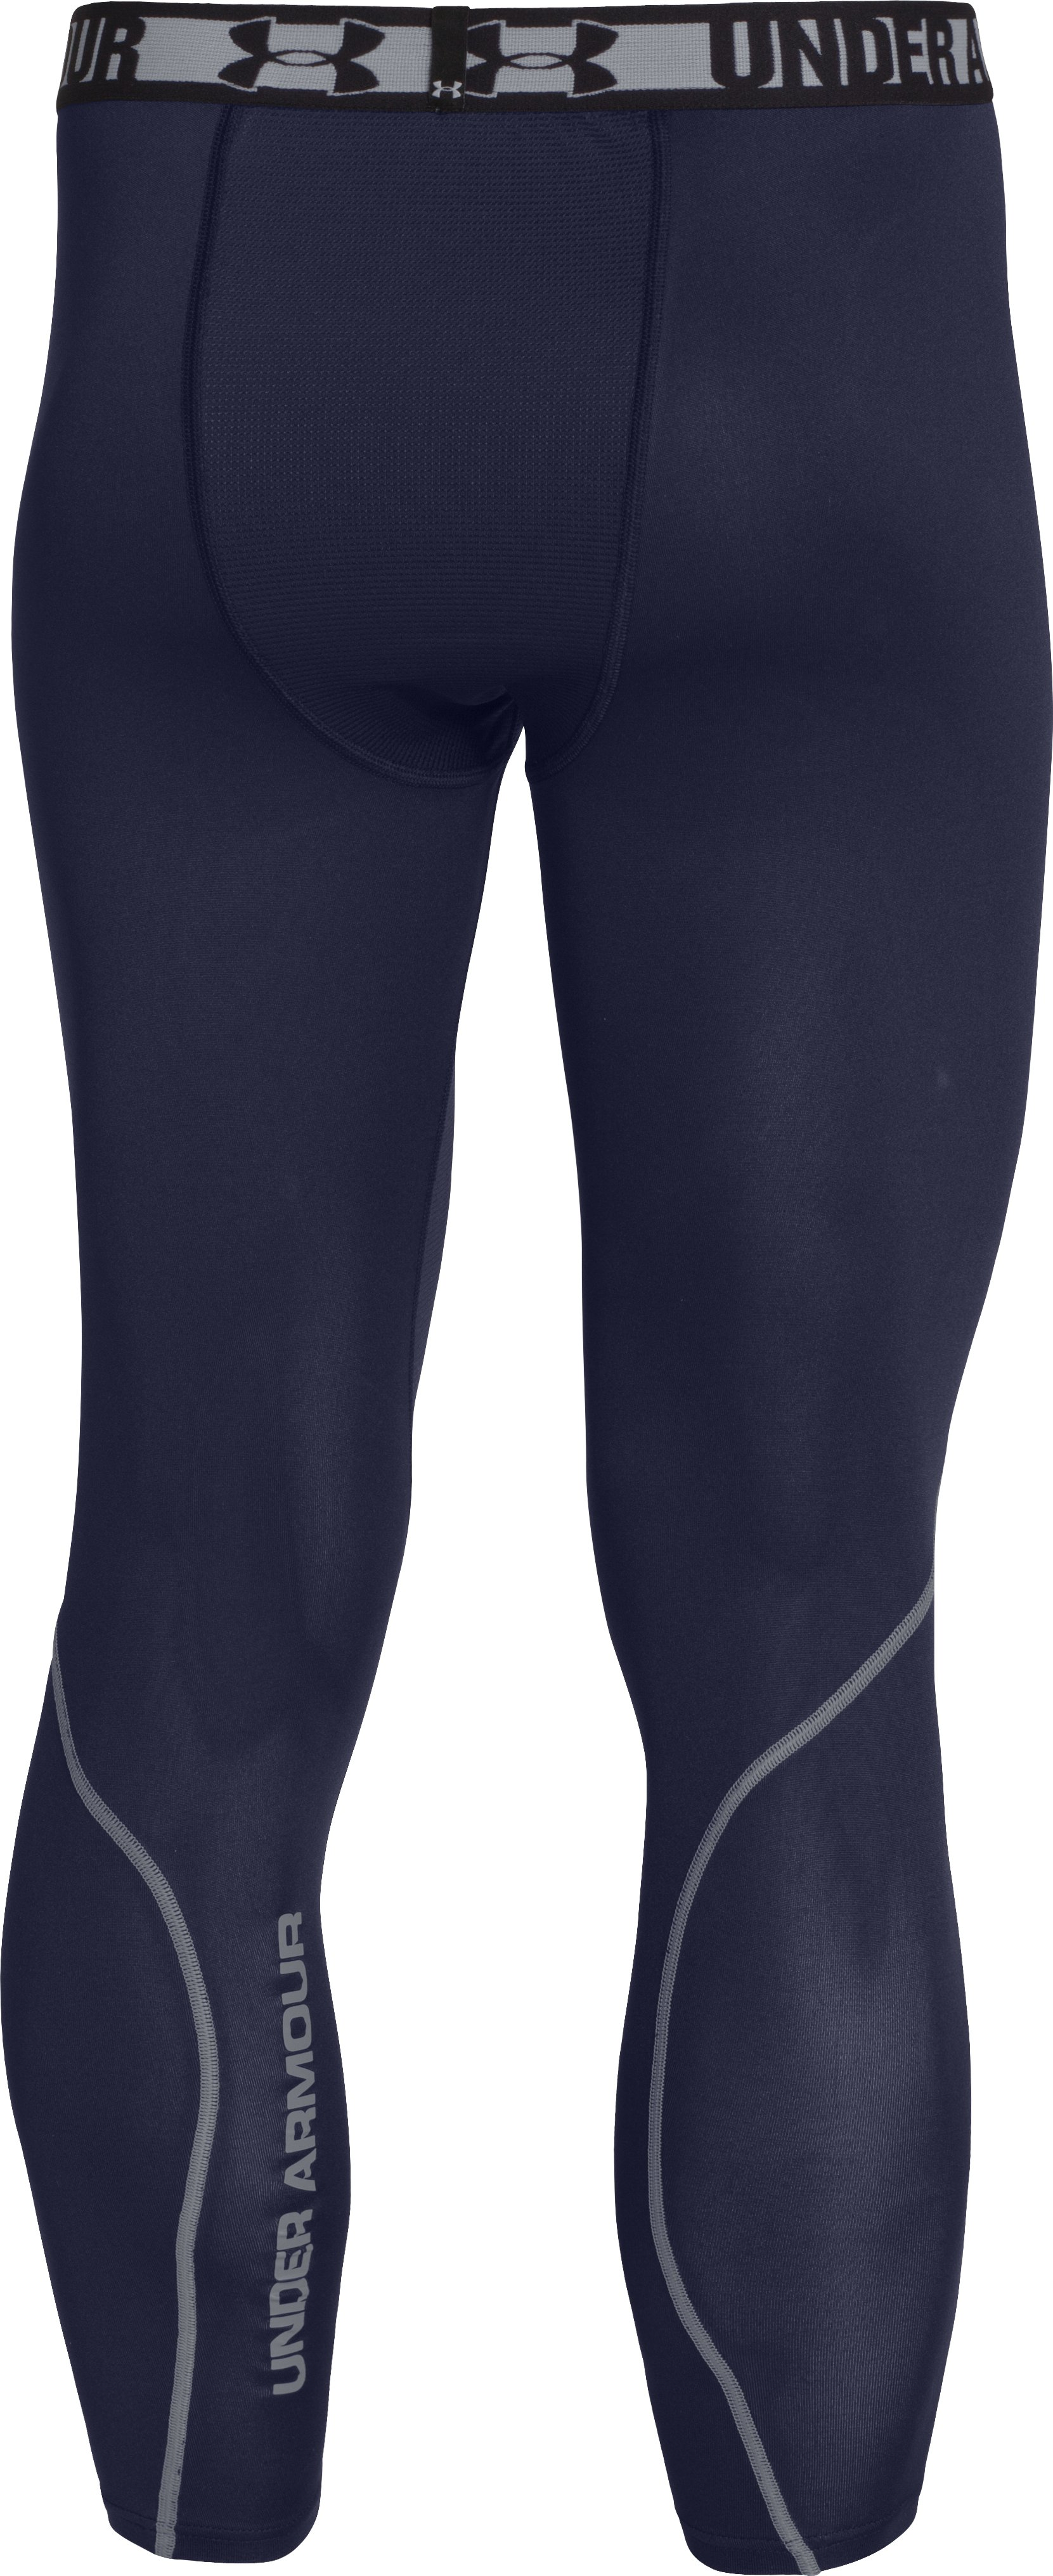 Men's UA Purestrike Pants, Midnight Navy